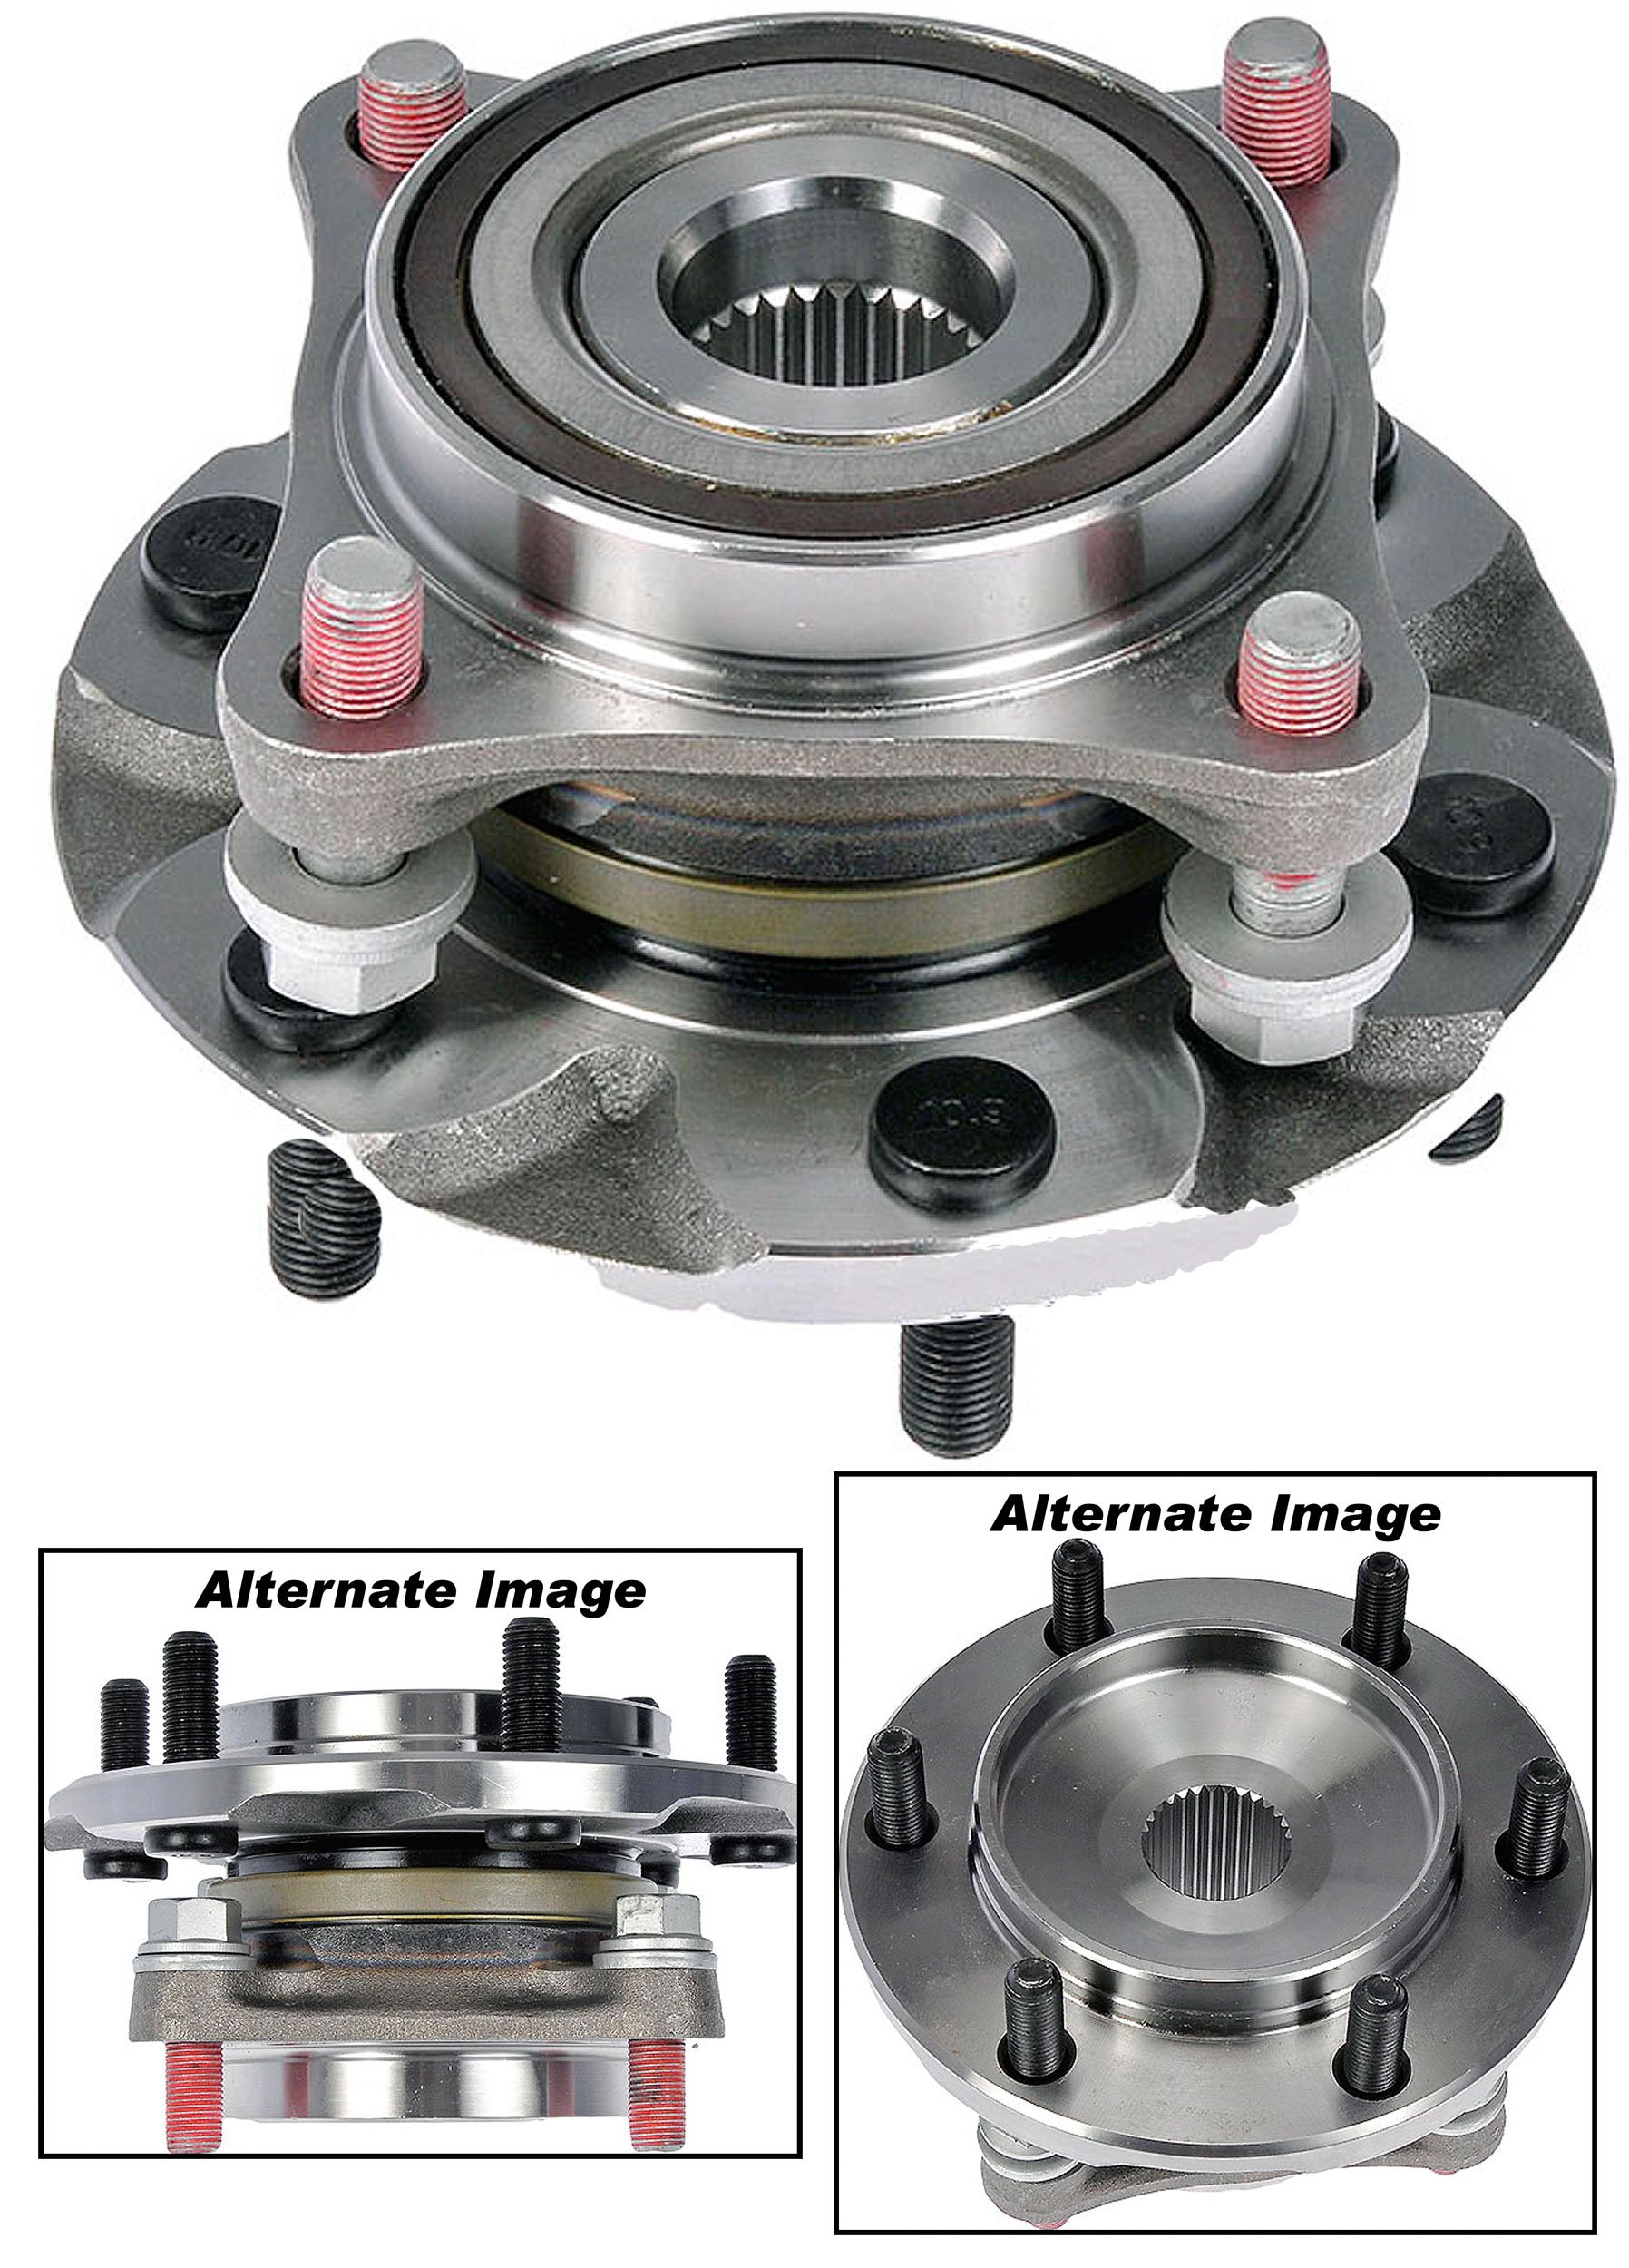 APDTY 515040 Wheel Hub Bearing Bolt On Assembly w/ Studs Fits Front Left or Right 2010-2014 Lexus GX460 2003-2009 GX470 2003-2013 4Runner 2007-2013 FJ Cruiser 2005-2012 Tacoma (AWD 4WD Models Only)